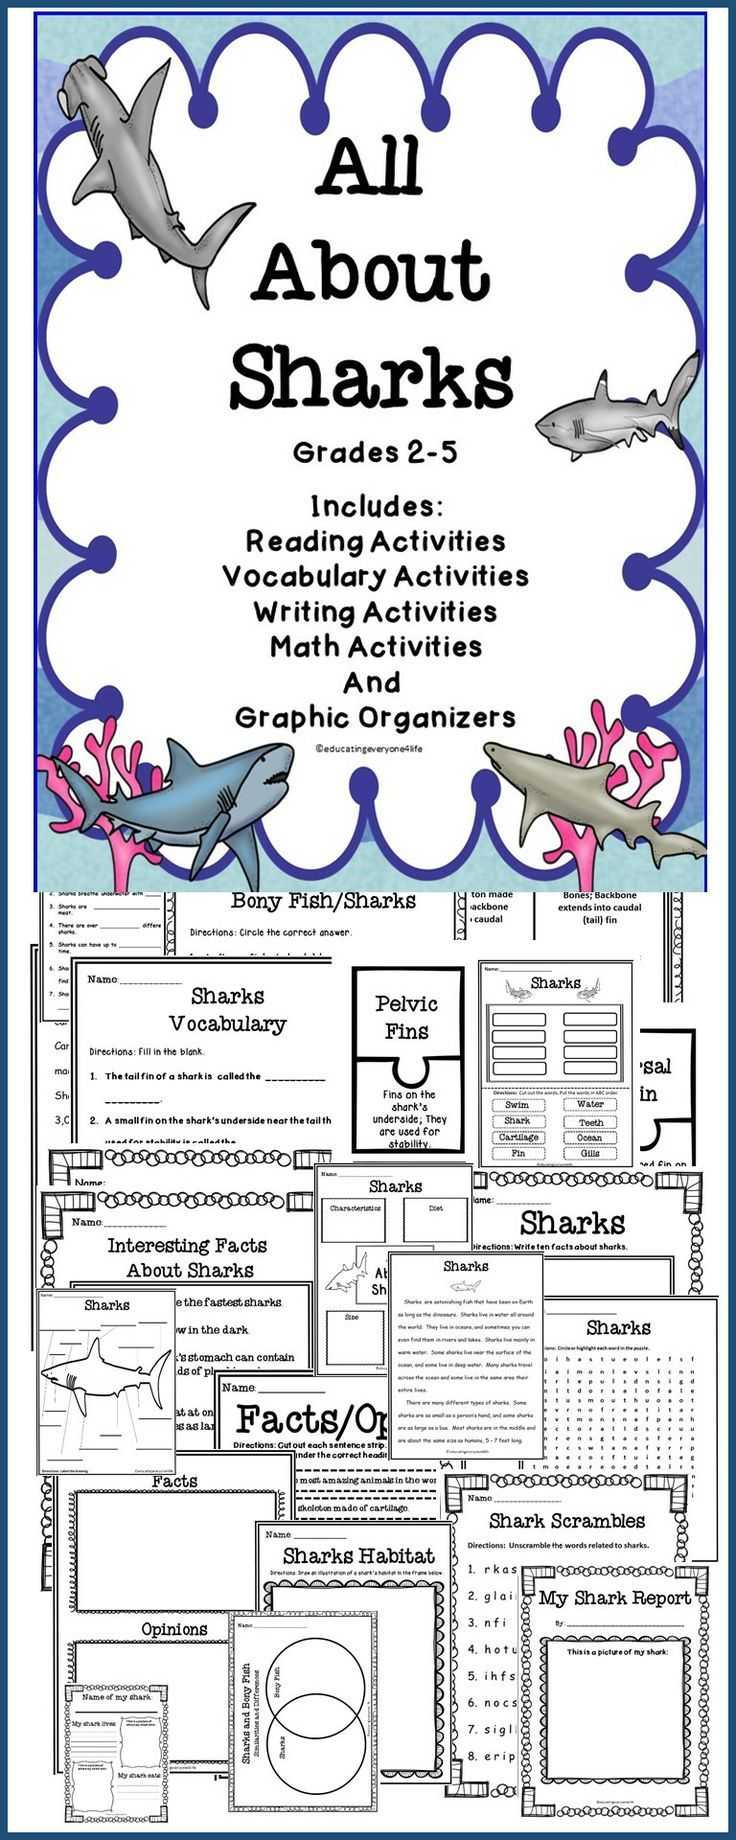 Celebrate Shark Week In The Classroom! An integrated unit about Sharks - Includes reading comprehension, writing, charts, graphic organizers, and more.